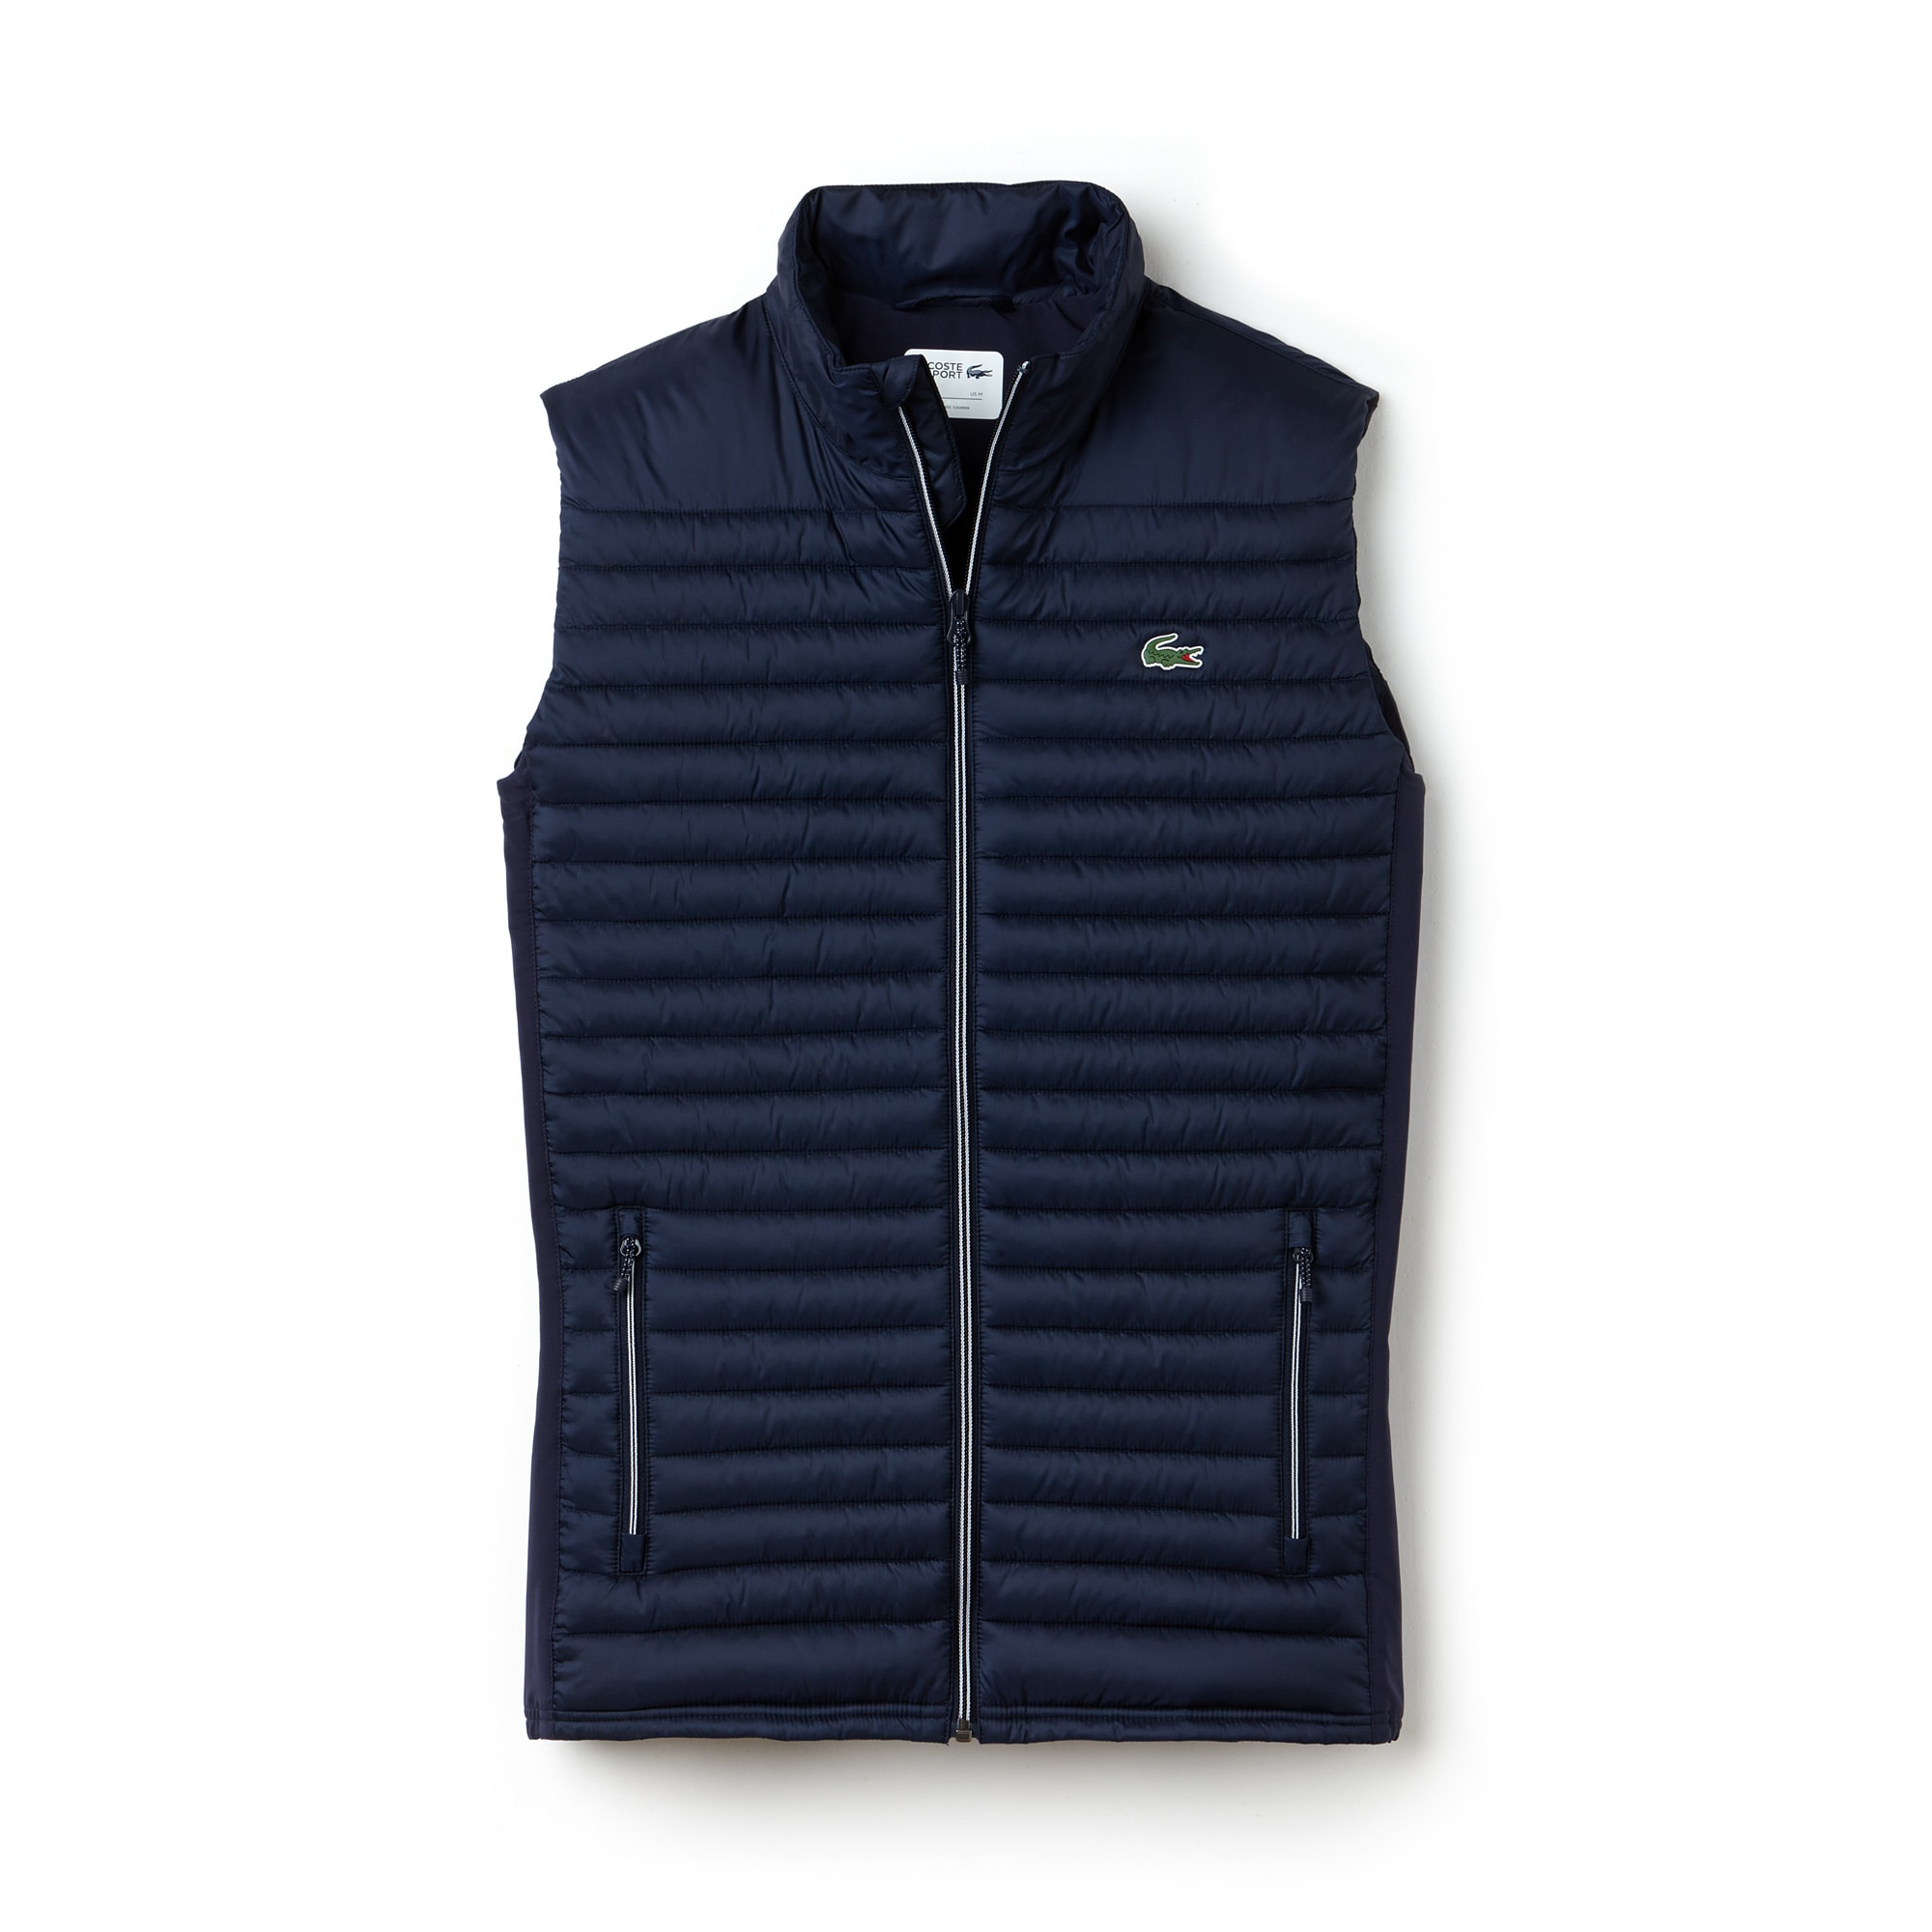 Men's Lacoste SPORT Golf Water-resistant Quilted Vest